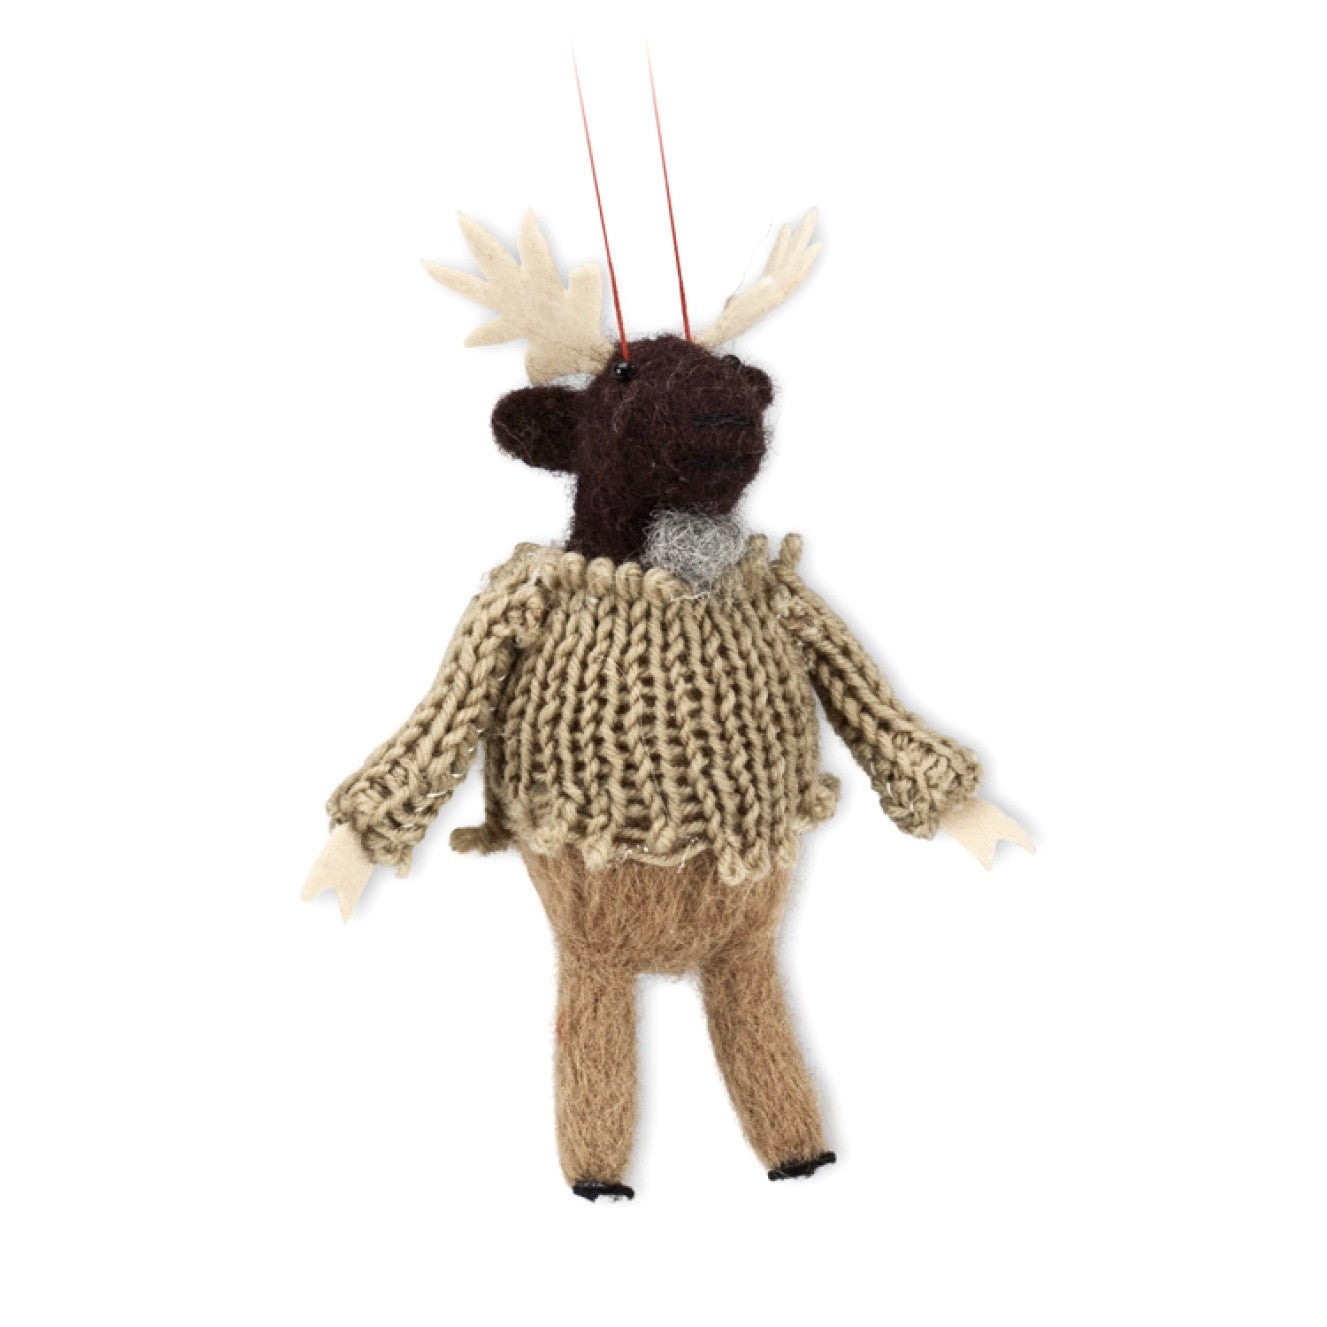 Moose in Sweater Felted Ornament -  Christmas - AC-Abbot Collection - Putti Fine Furnishings Toronto Canada - 1